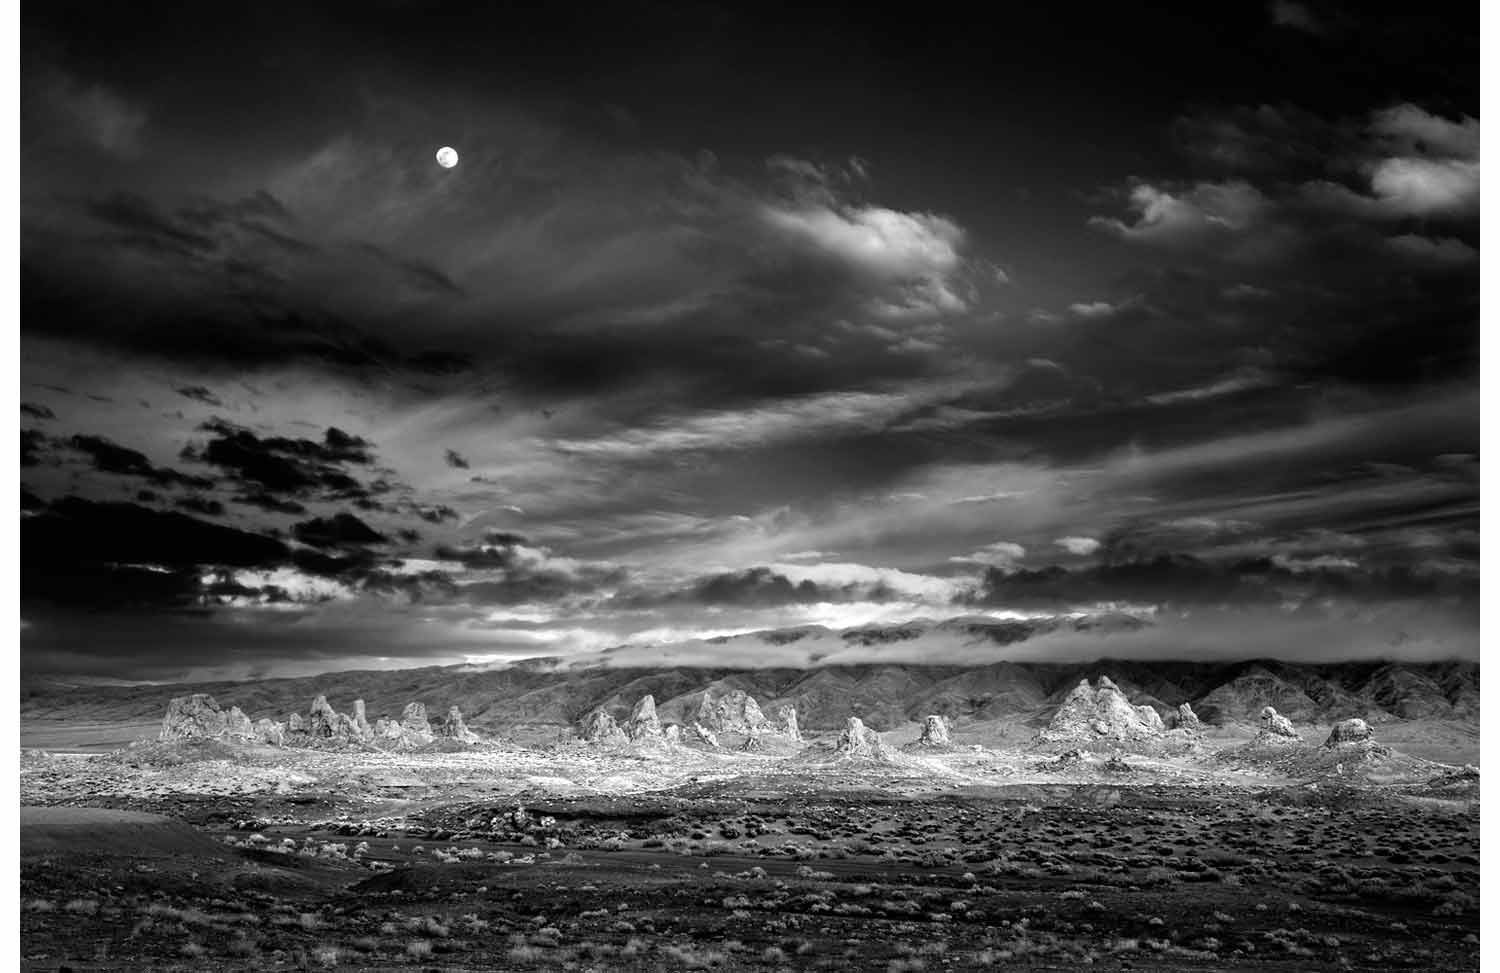 Moonrise Trona (A print and book set) by